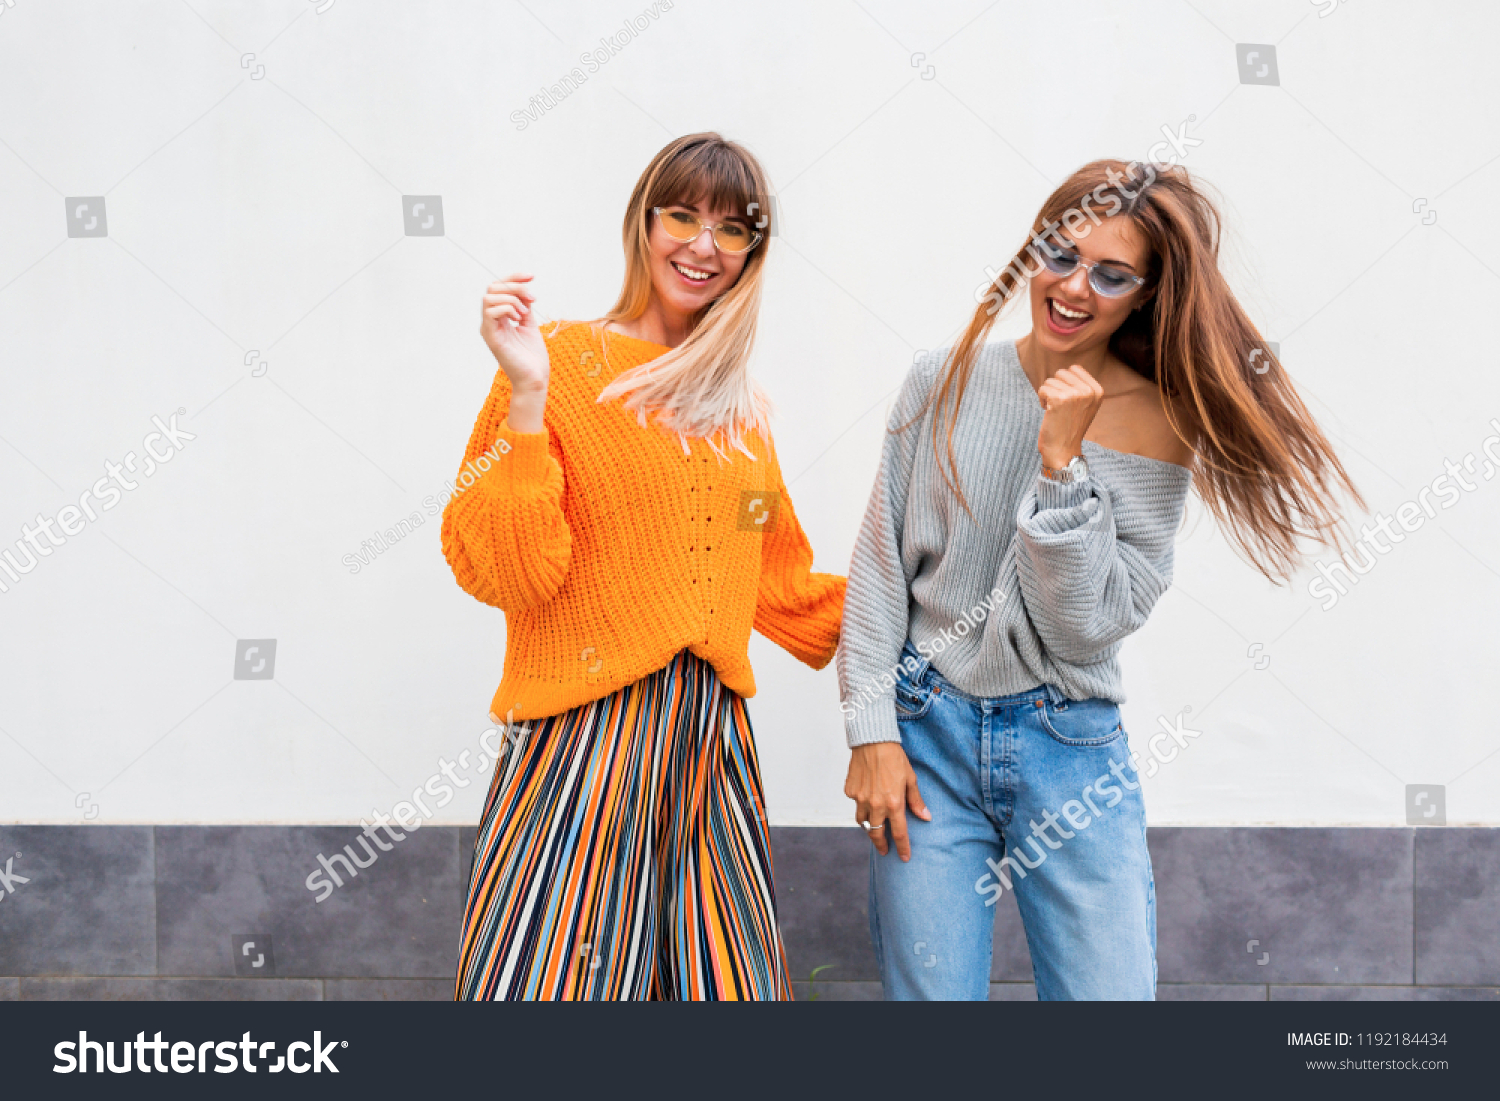 7a834537675 Outdoor lifestyle portrait of couple of young women having fun together.  Windy hairs. Two